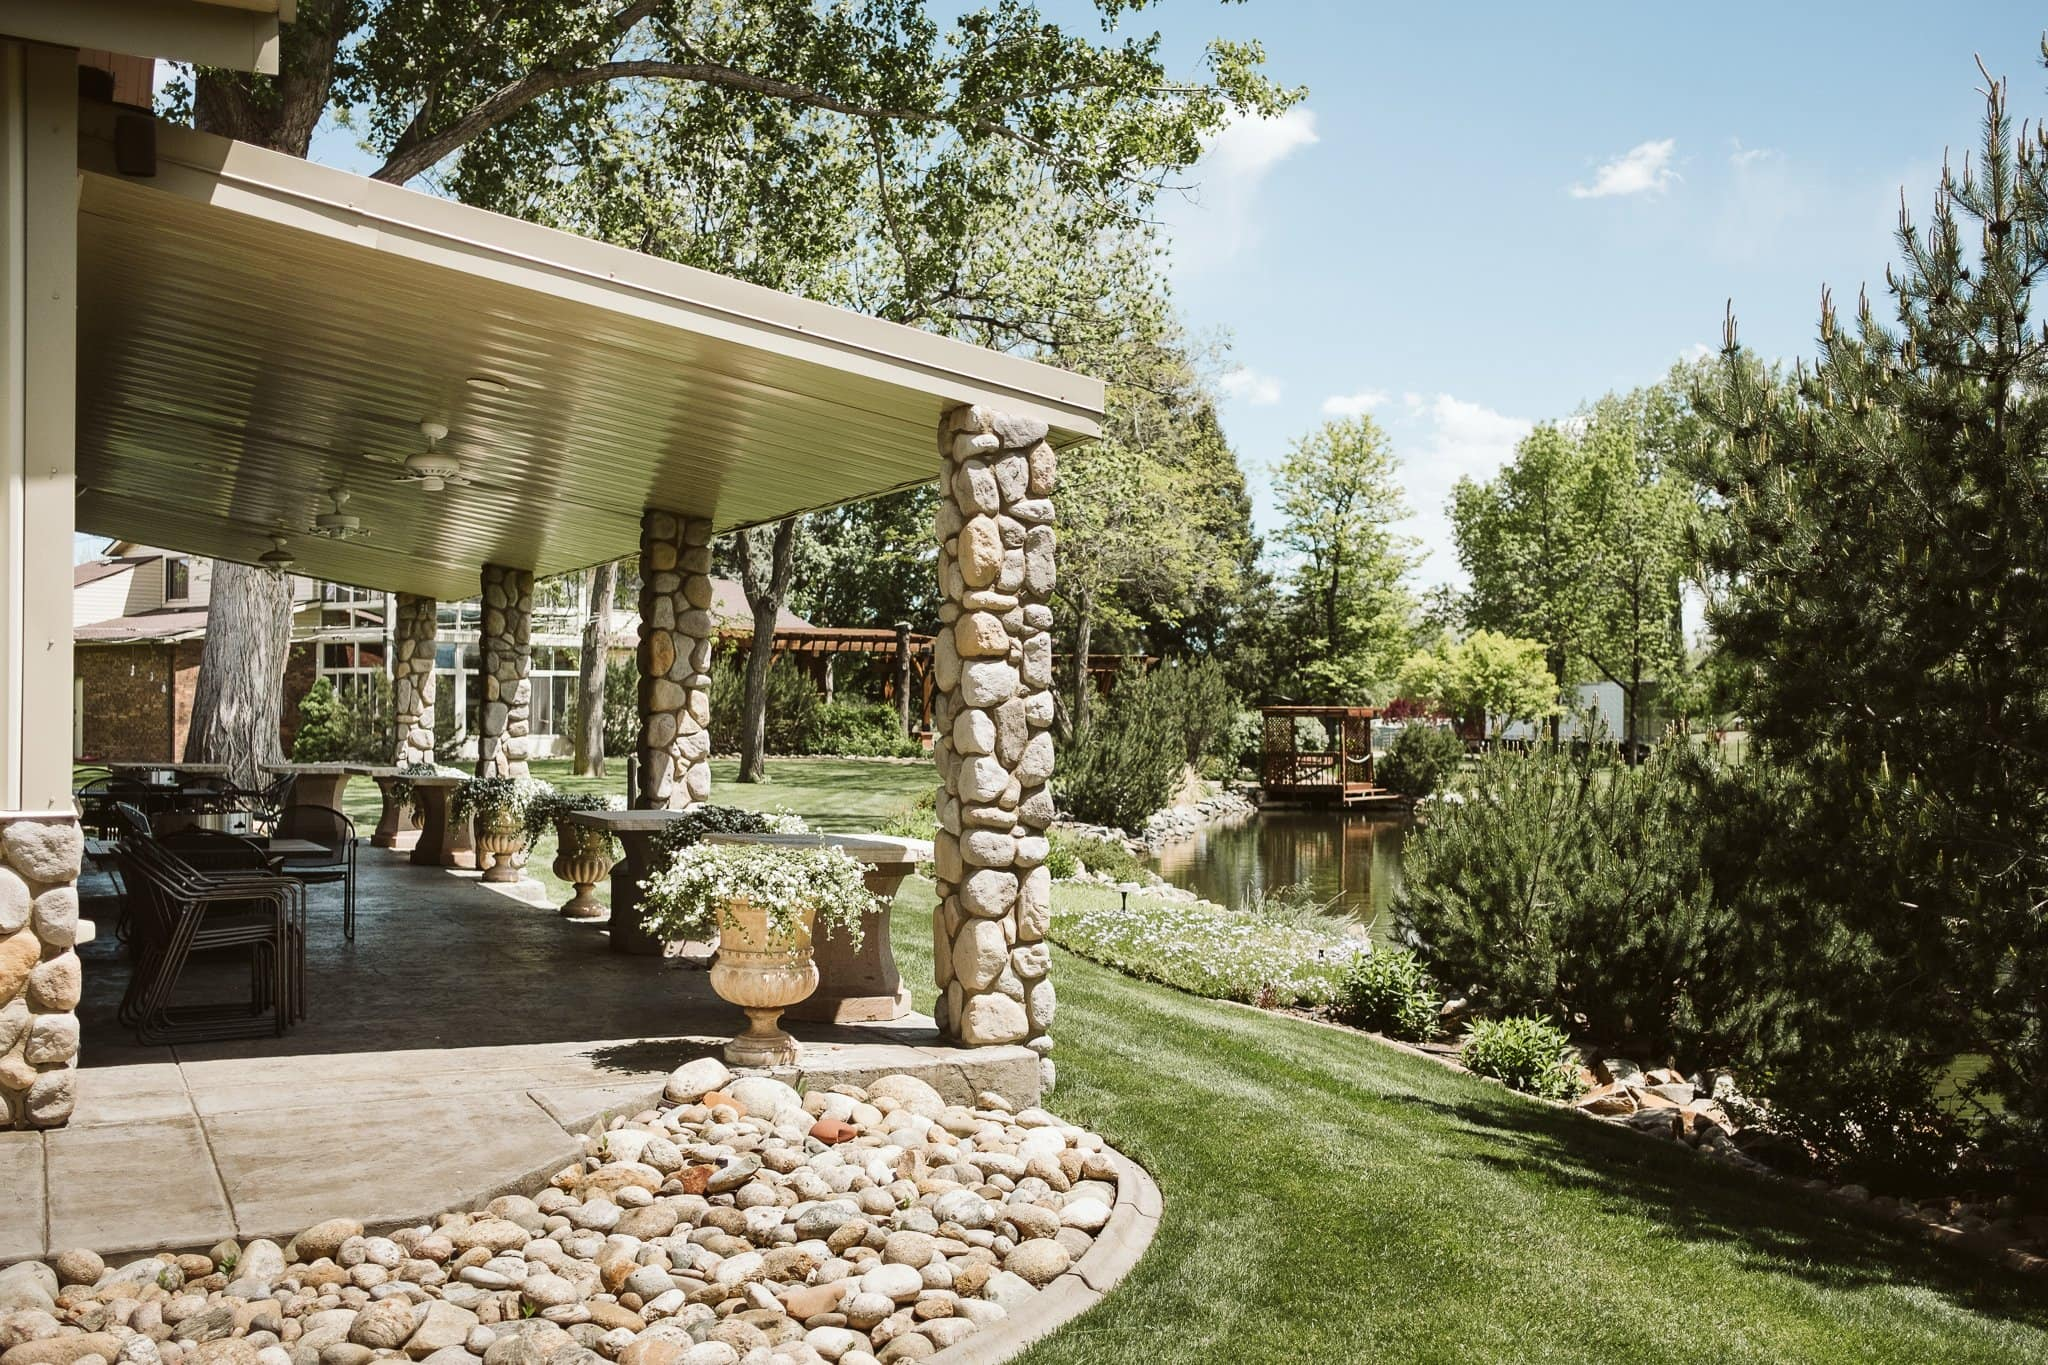 shupe-homestead-wedding-venue-boulder-3